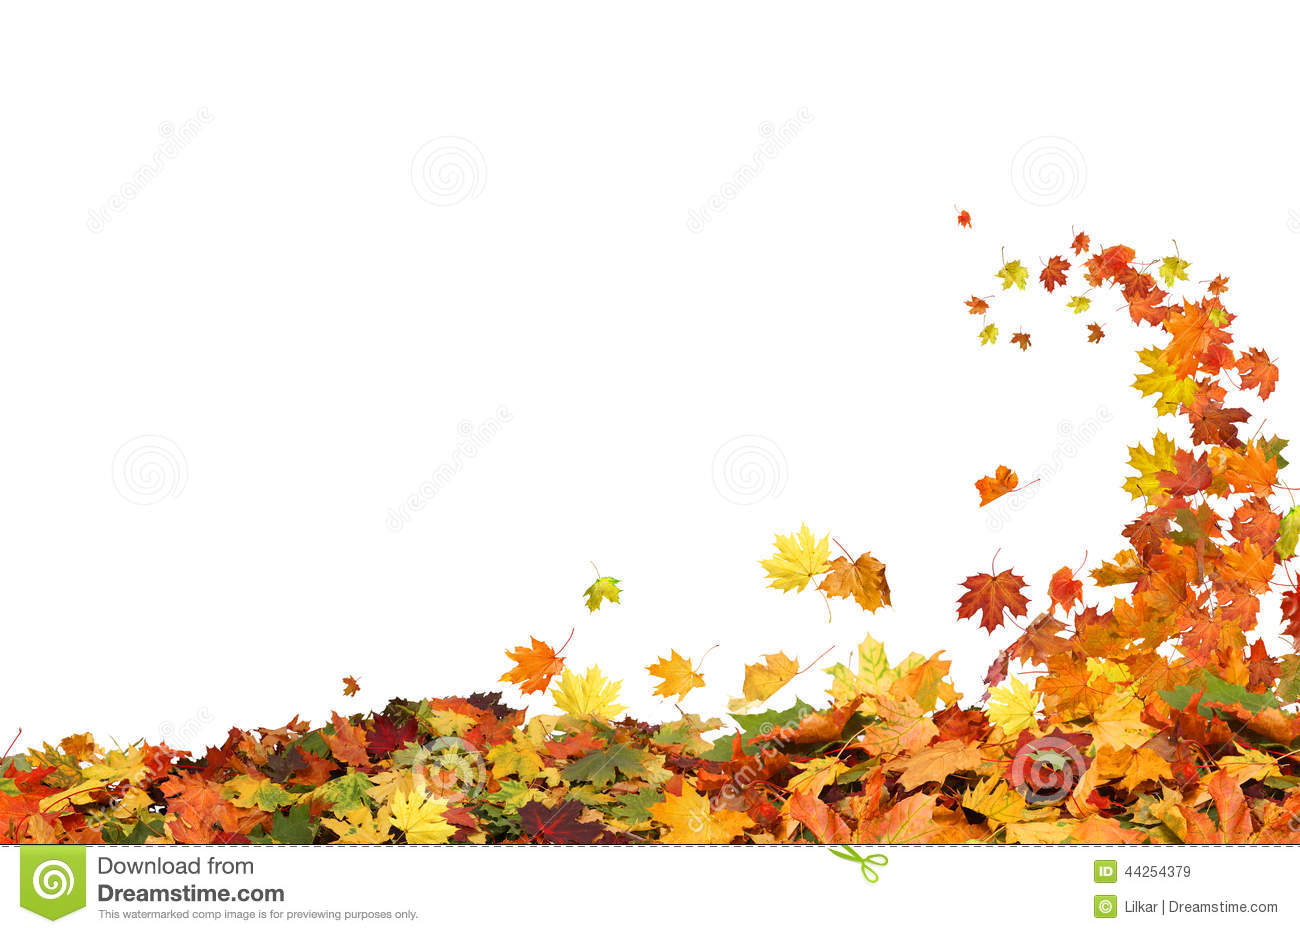 Fall Leaves Wallpaper Autumn Falling Leaves Stock Image Image Of Falling